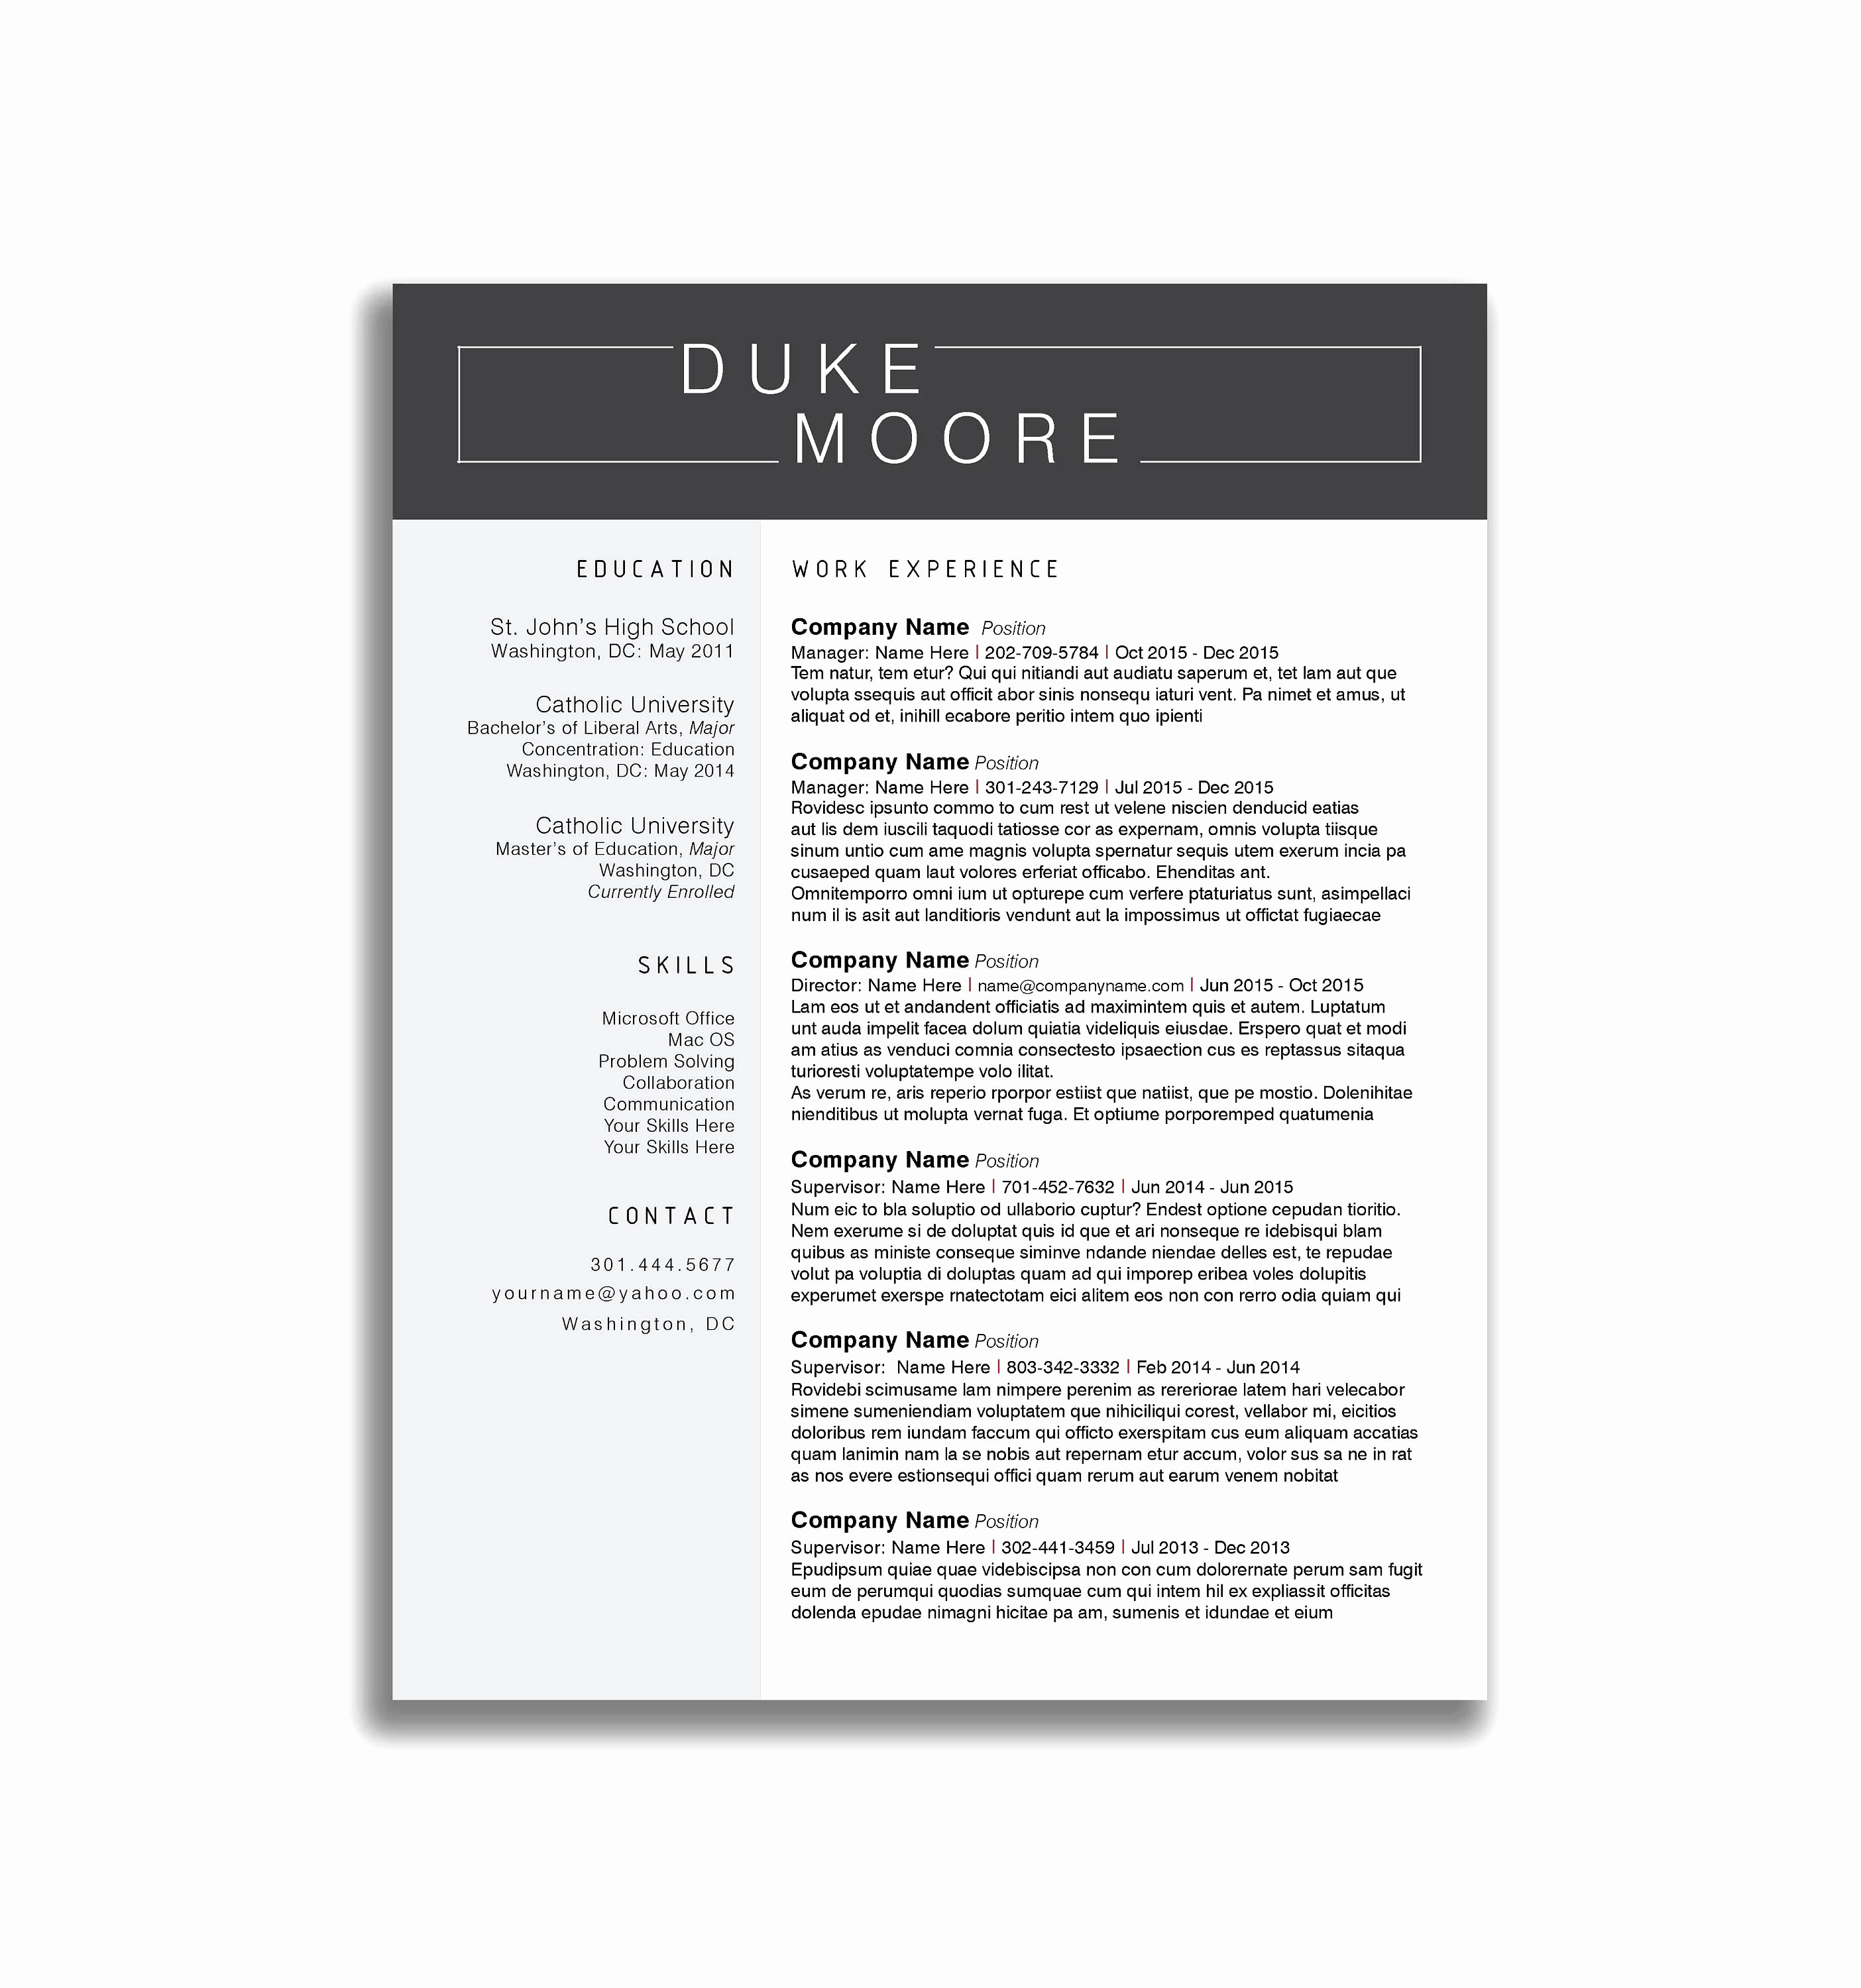 Resume Templates that Stand Out - Making Resumes Stand Out Cover Letters that Stand Out Luxury 13